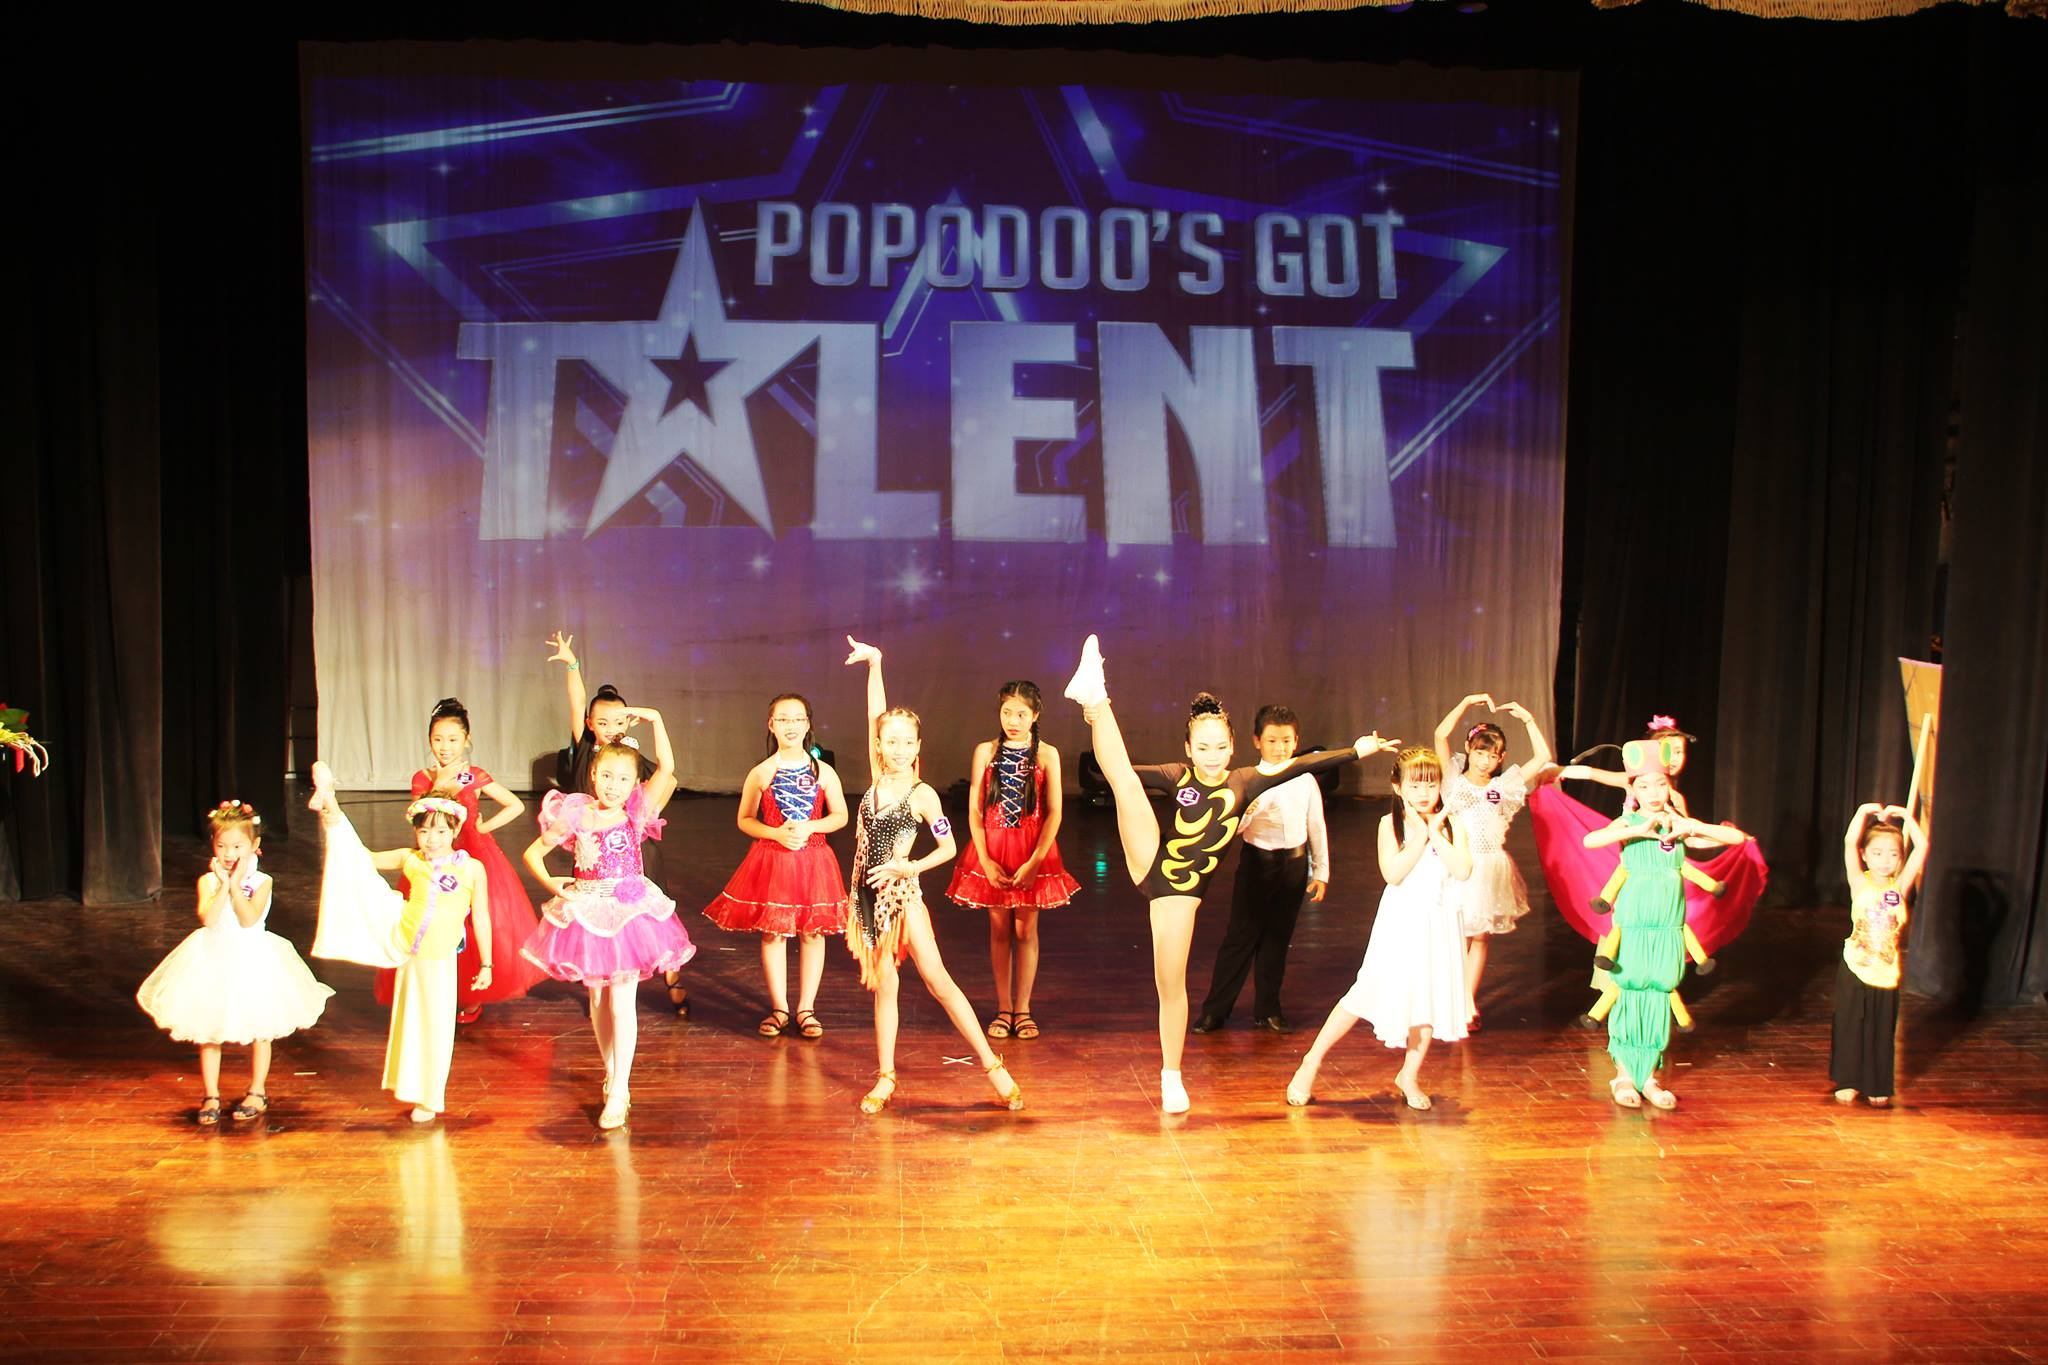 THROWBACK POPODOO'S GOT TALENT